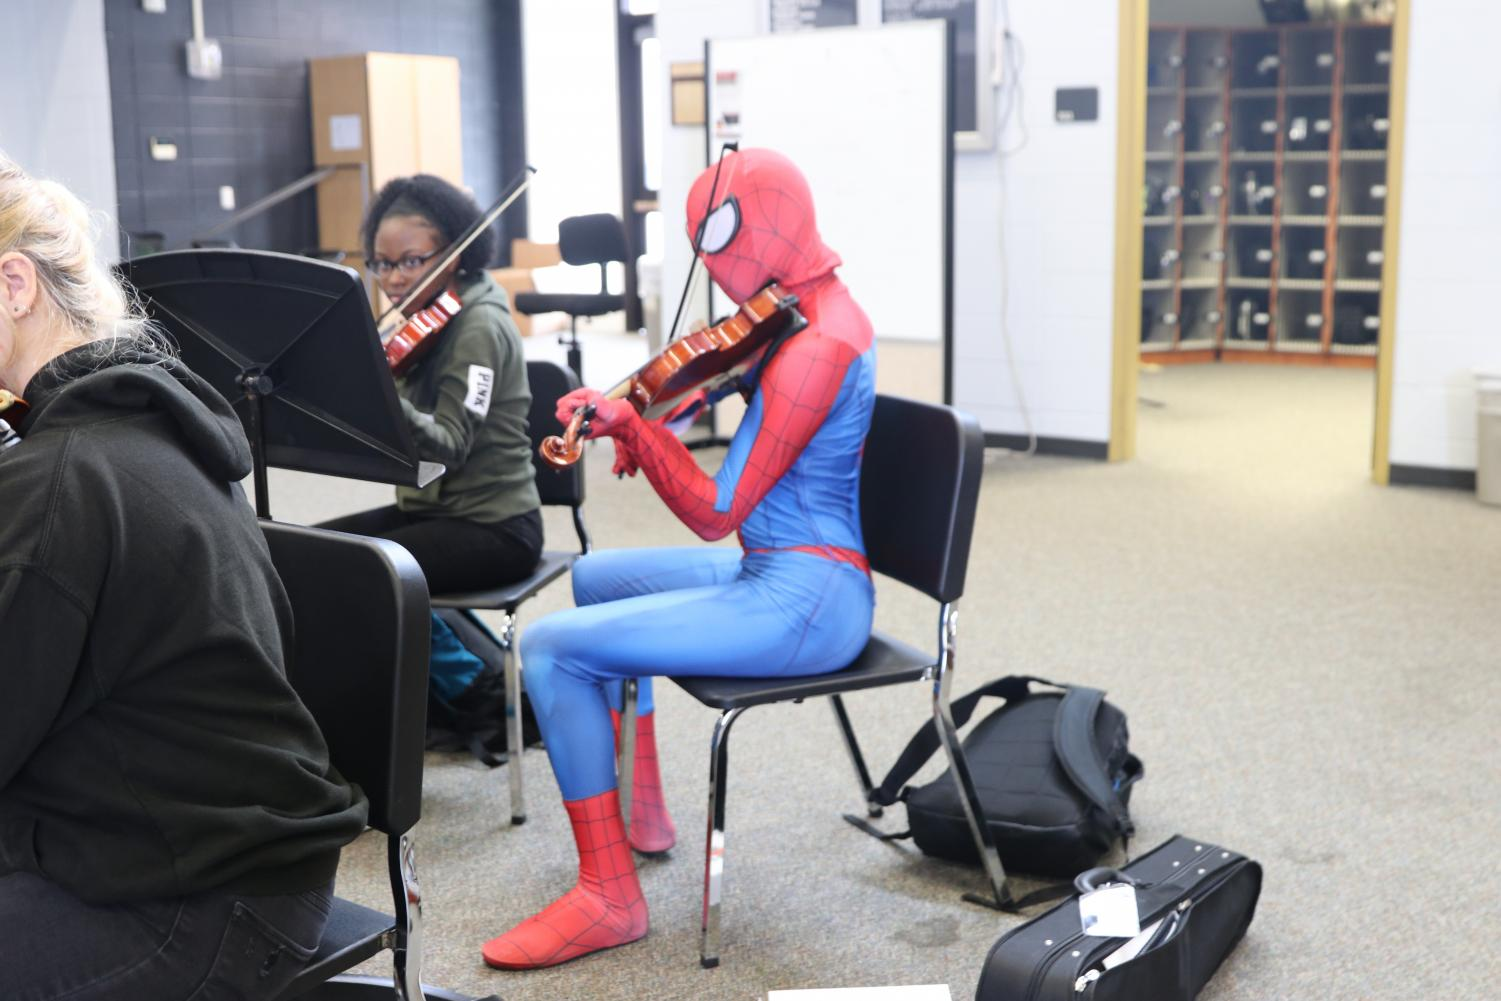 Senior Bryce Allen doesn't skip a beat while dressed up as Spider-Man during his 4th period Symphony Orchestra class on Meme Day.